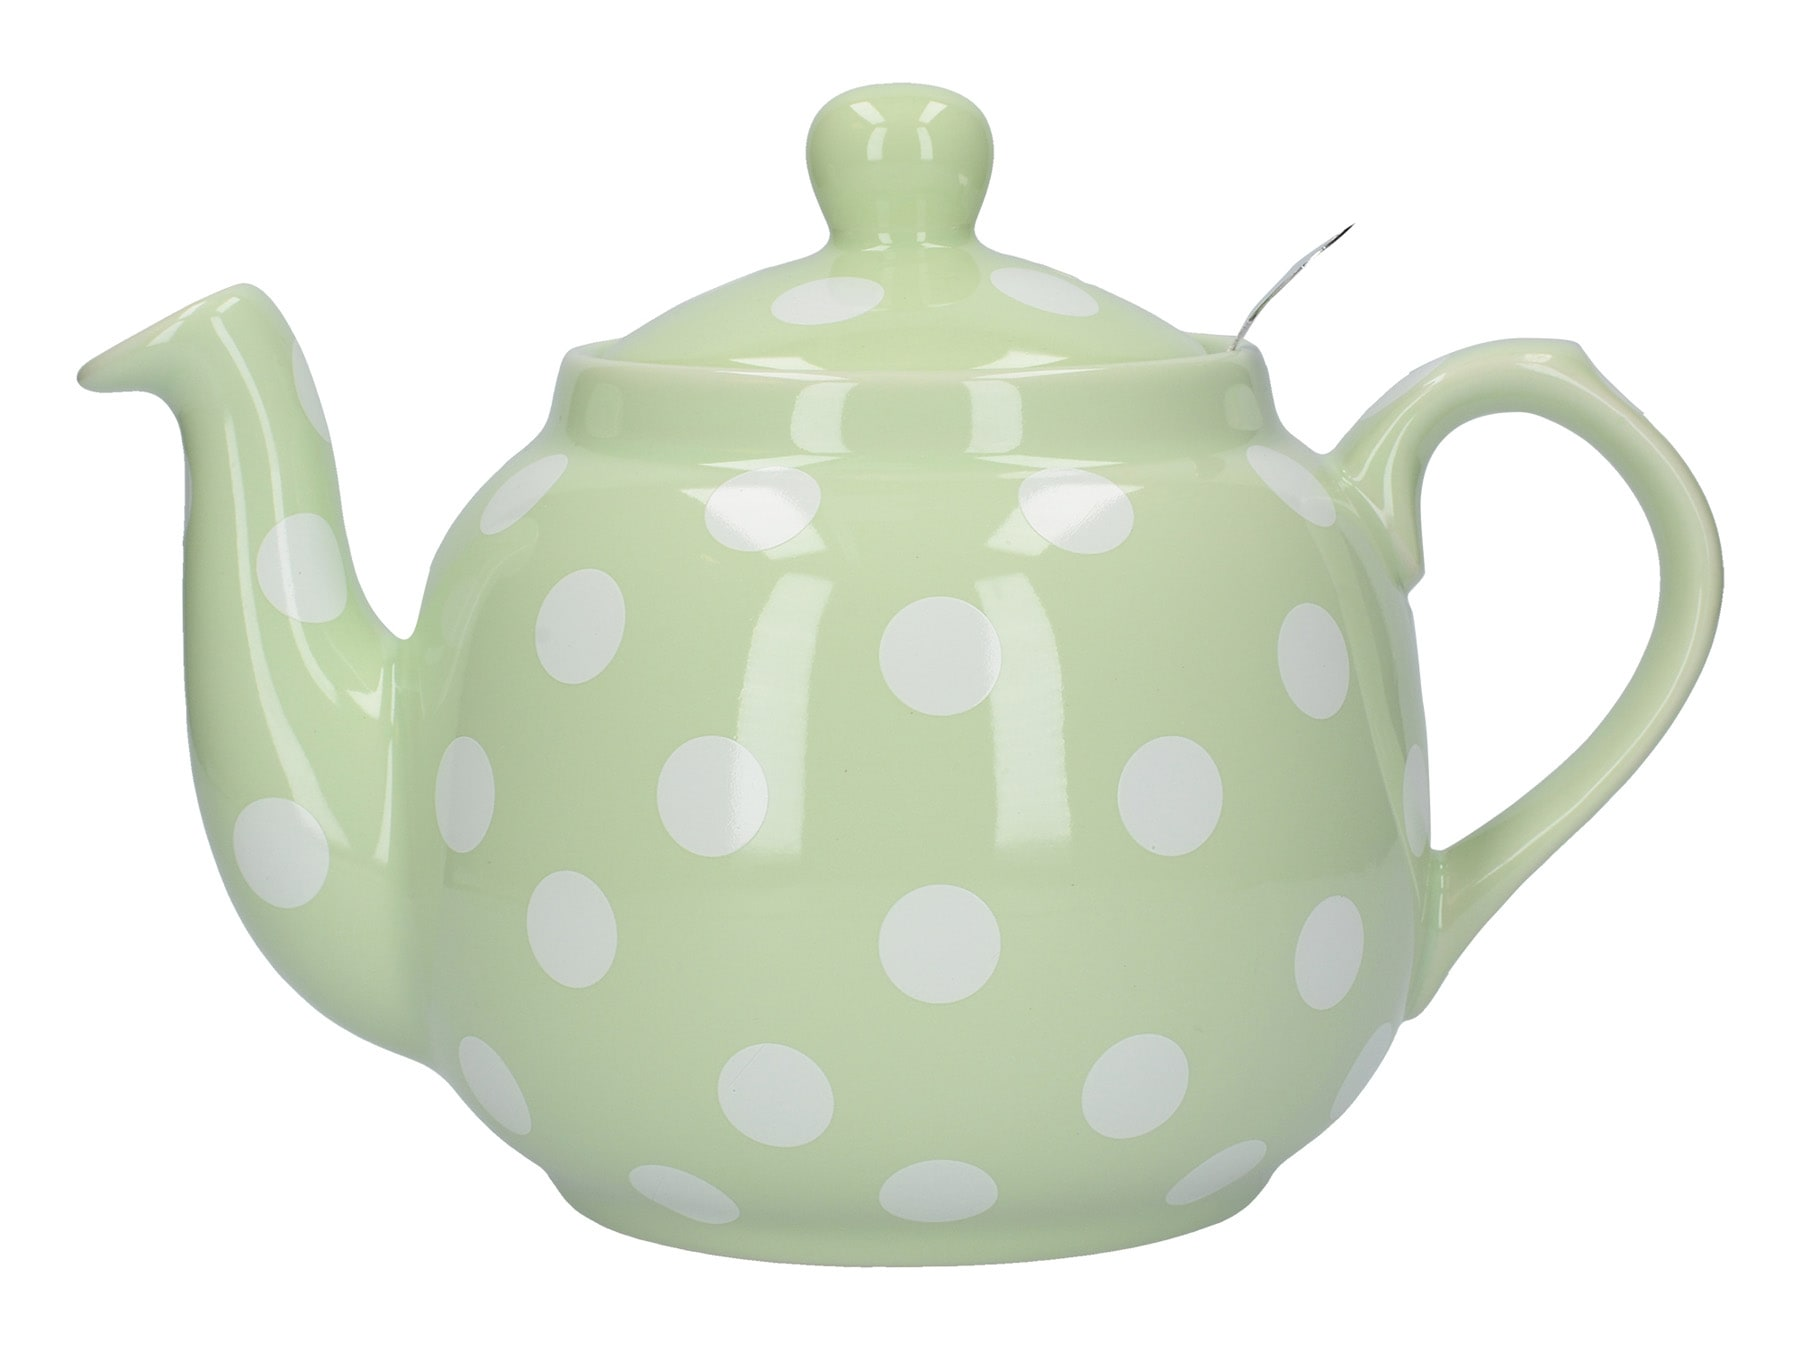 London Pottery Farmhouse 4 Cup Teapot Peppermint With White Spots